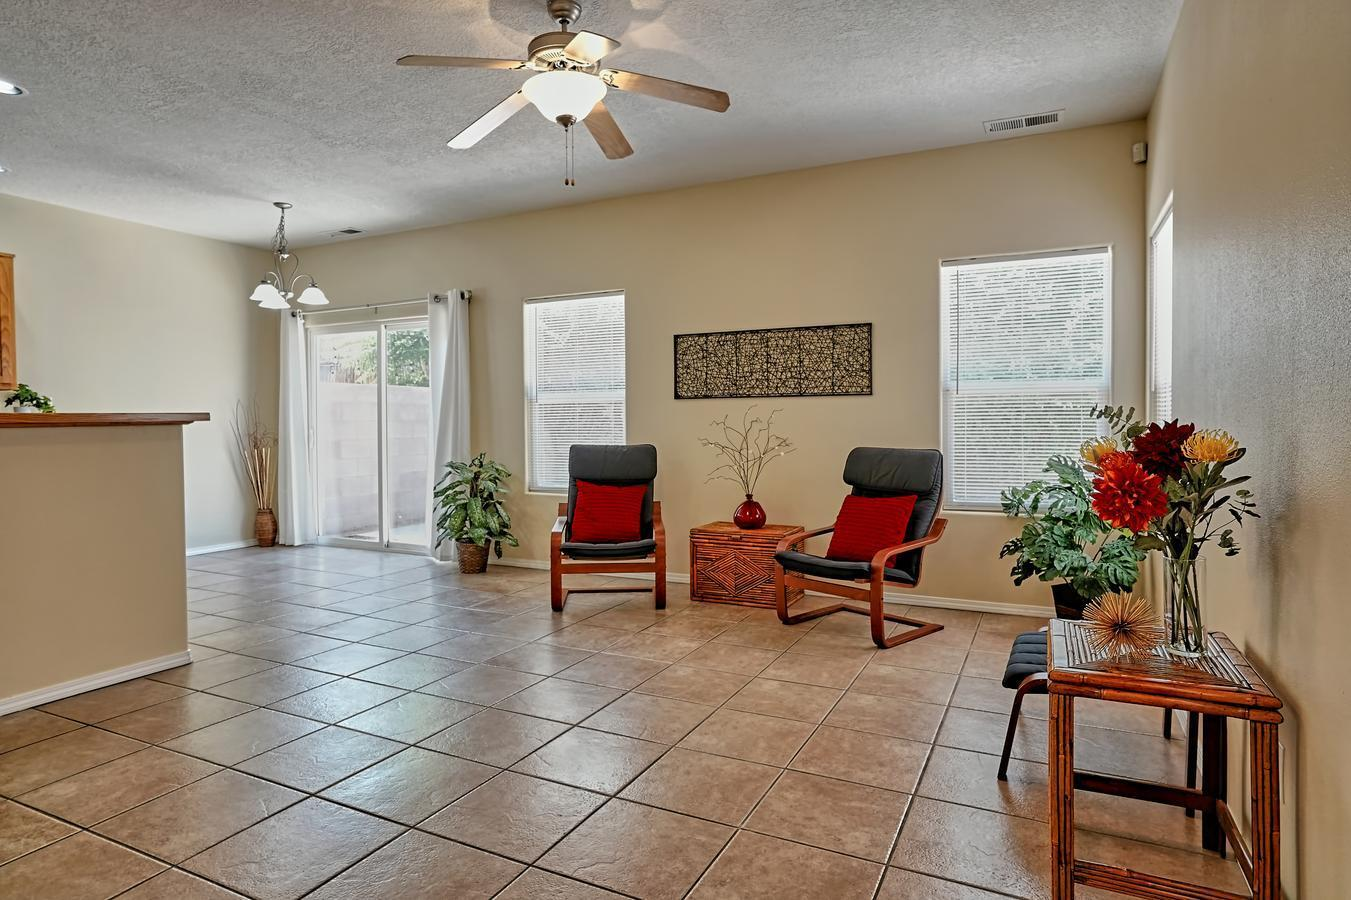 Wonderful light & bright townhome in UNM area.  3 bedrooms (huge primary bedroom with great walk-in closet), 2.5 baths, 2 car garage - built in 2004. Open floor plan with tile flooring throughout downstairs. New paint & carpet (6/21), New Stainless Steel Appliances (7/21), Refrig Air (combo unit) replaced 10/20, New Roof & Skylights (10/18), New Washer & Dryer (11/17), New Stucco (10/15), and more. Walk to UNM, UNMH, & Pres Hospital. Two minute walk to beautiful Spruce Park . . . a great place to live which is totally convenient to tons of cool places plus easy access to the freeway.  Was a good rental property for sellers. - if you're looking for a rental with a captive audience!  Take a look - and make an offer!